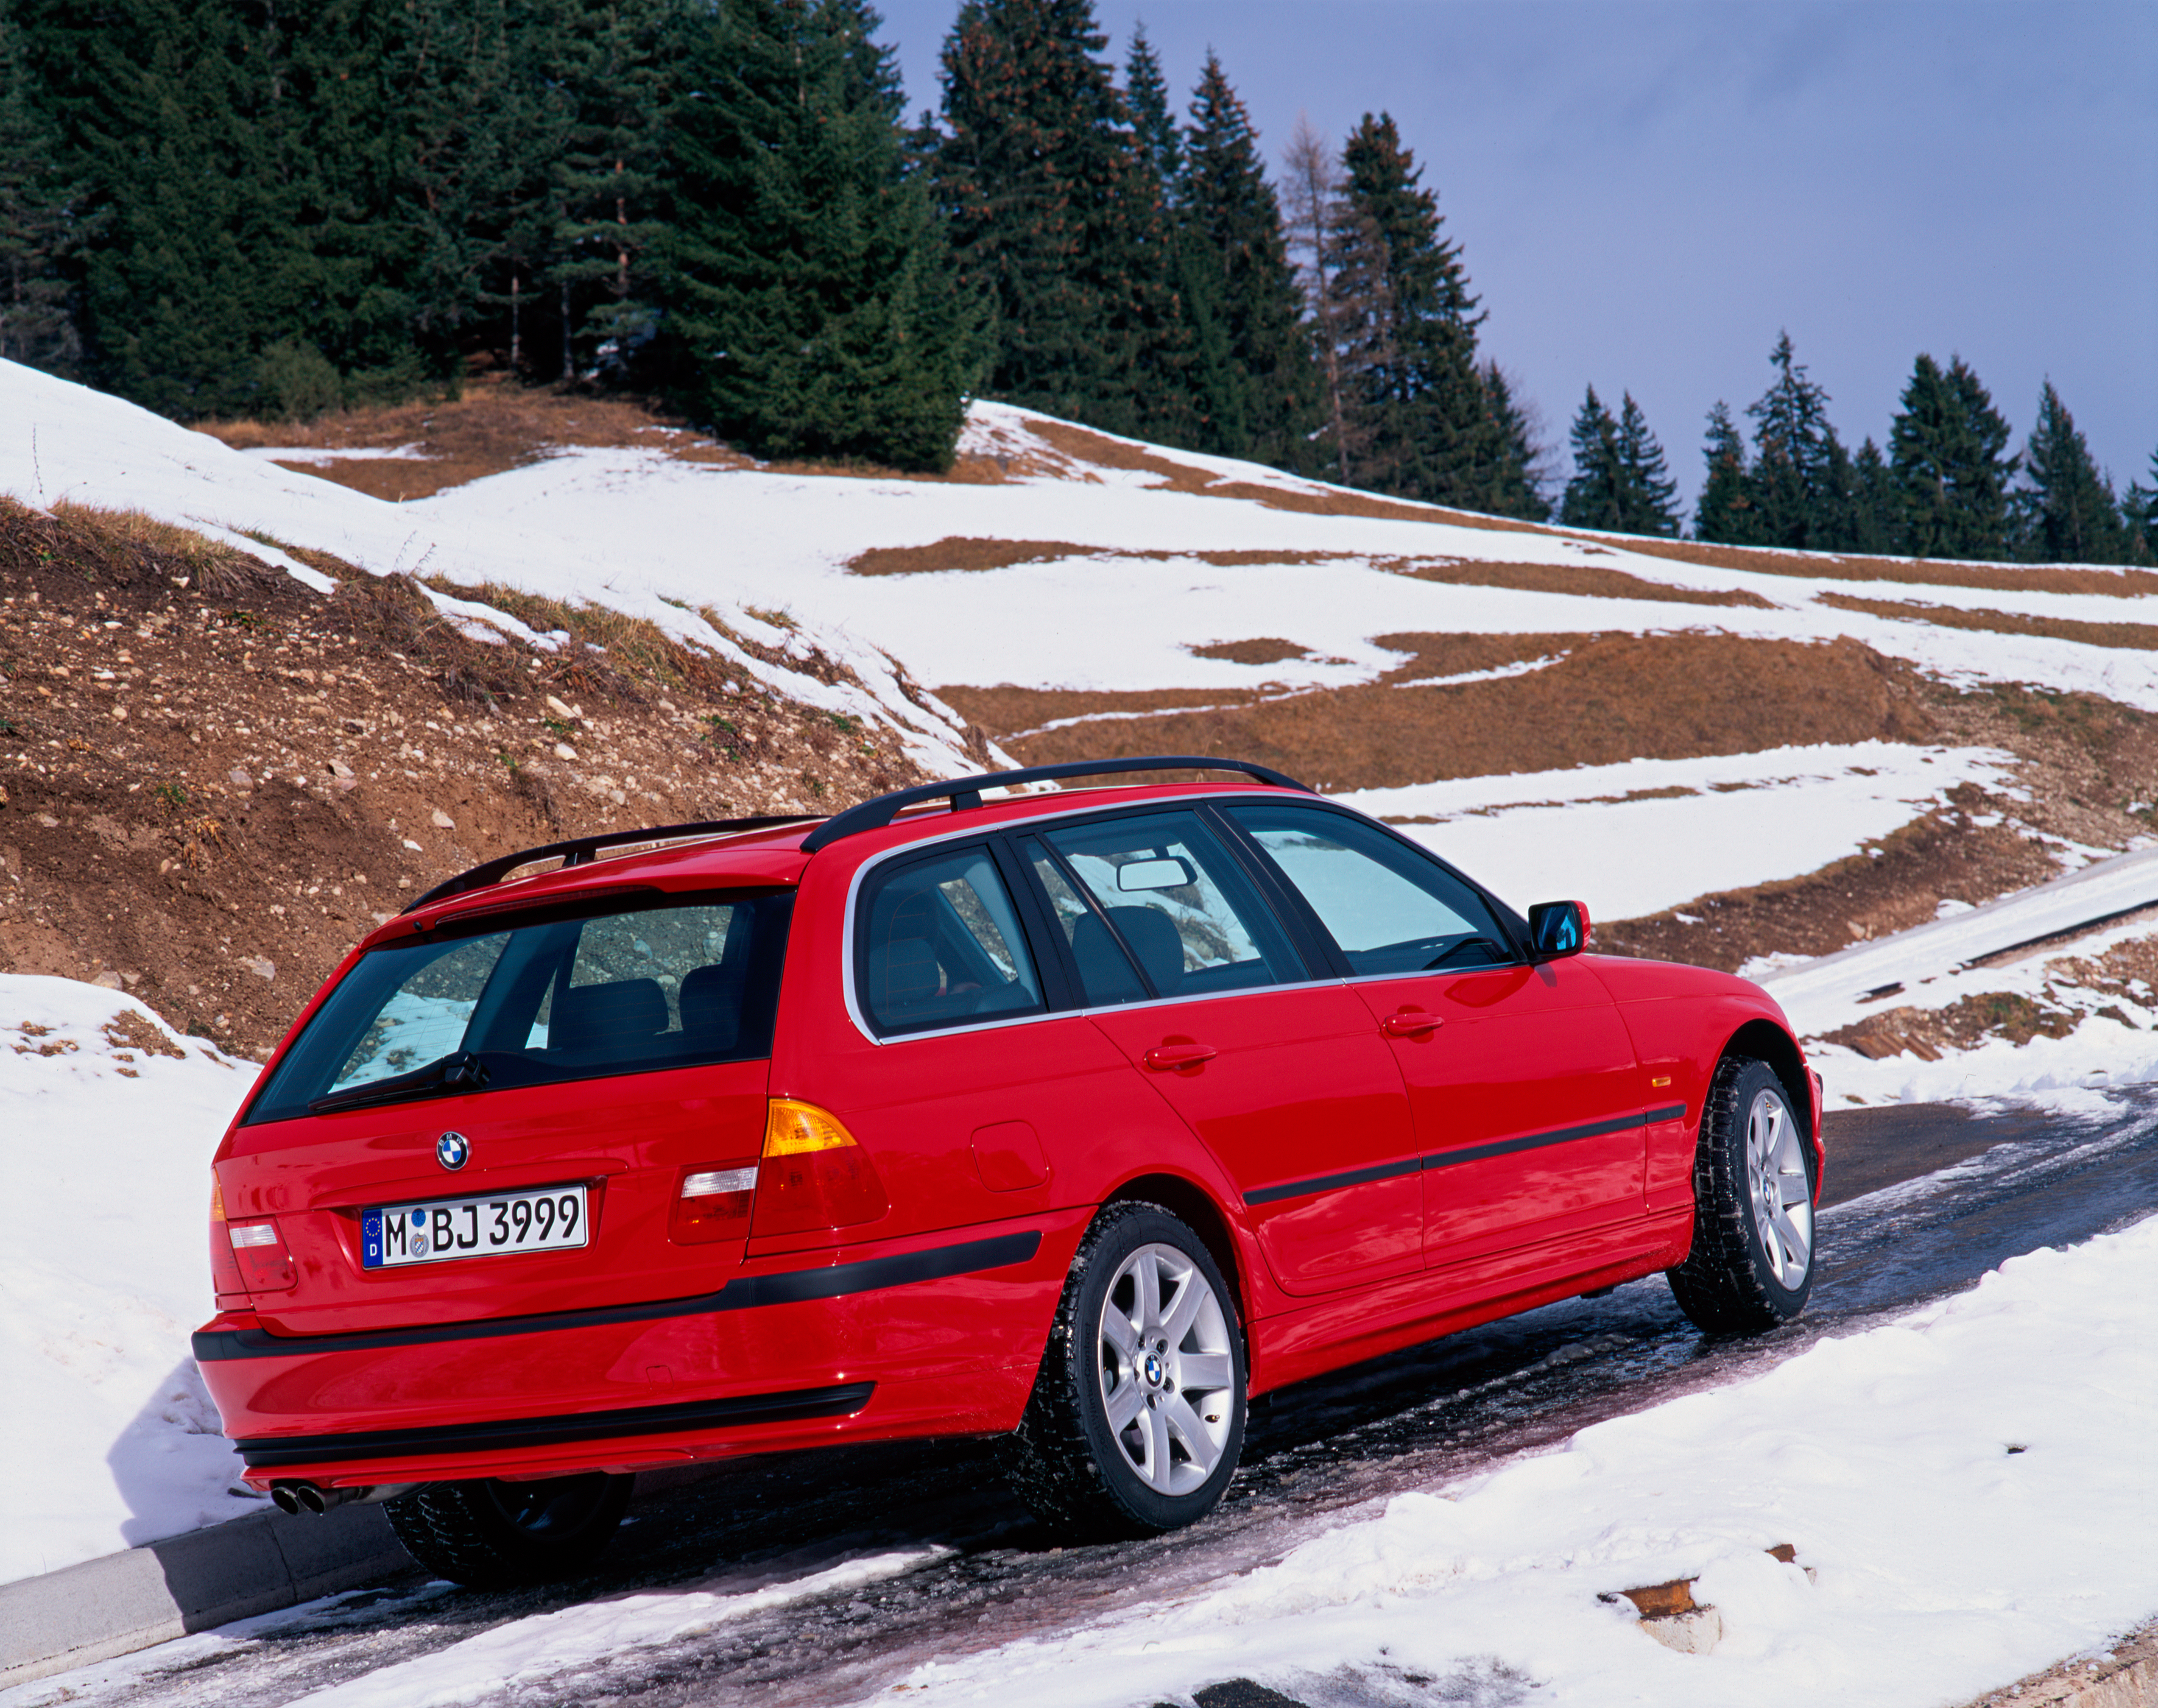 Bmw Celebrates 30 Years Of All Wheel Drive Technology